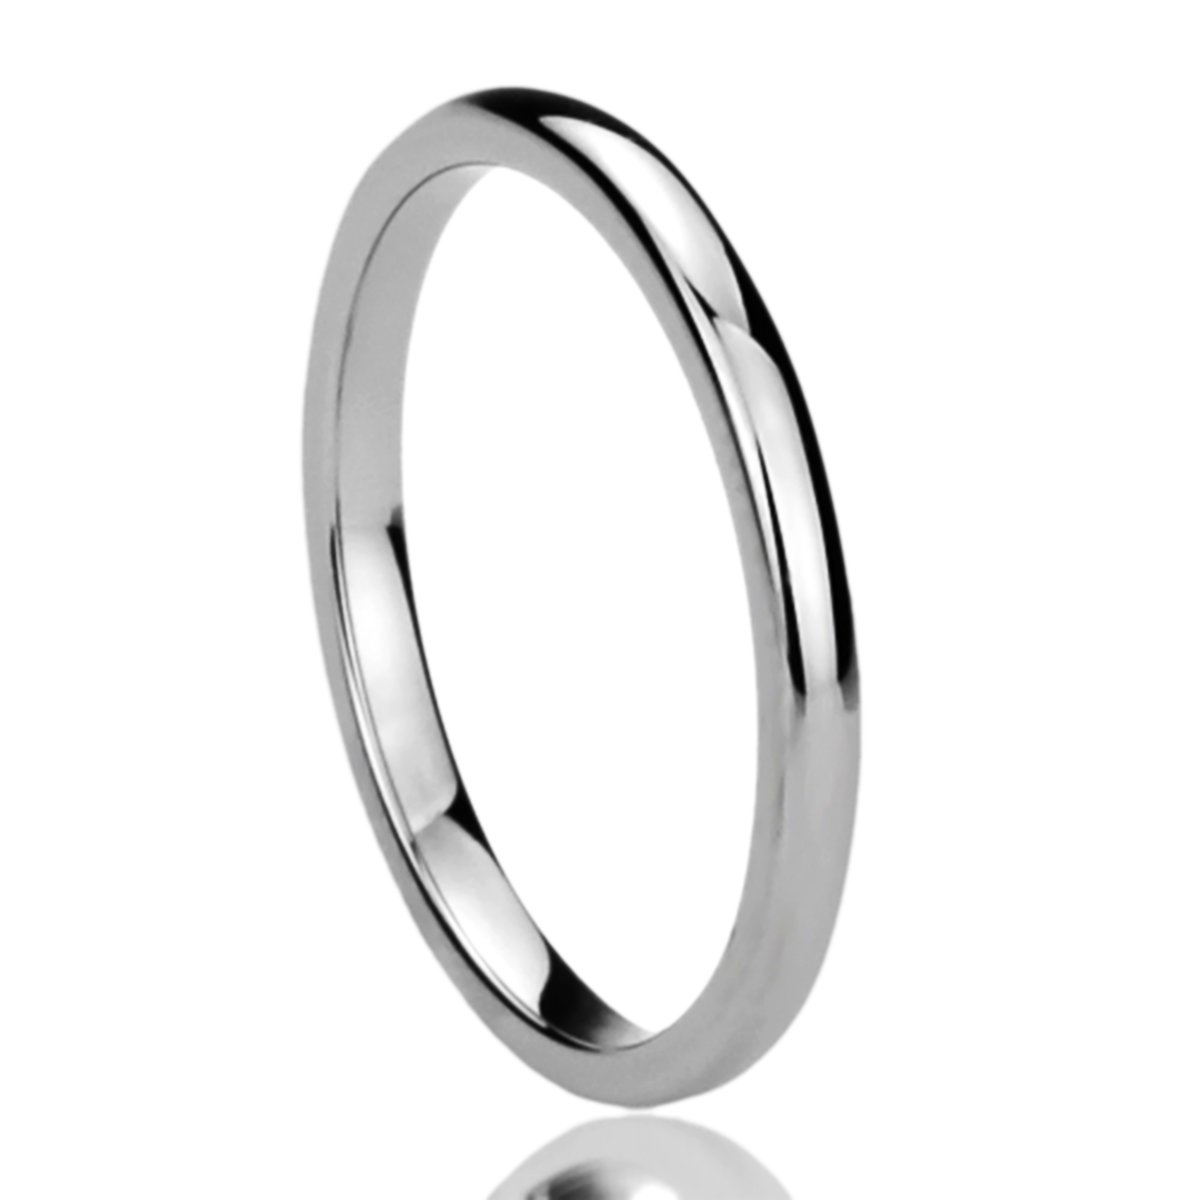 Women's 2MM Titanium Comfort Fit Wedding Band Ring High Polished Classy Domed Ring ( Size 5 to 11) - Size: 6